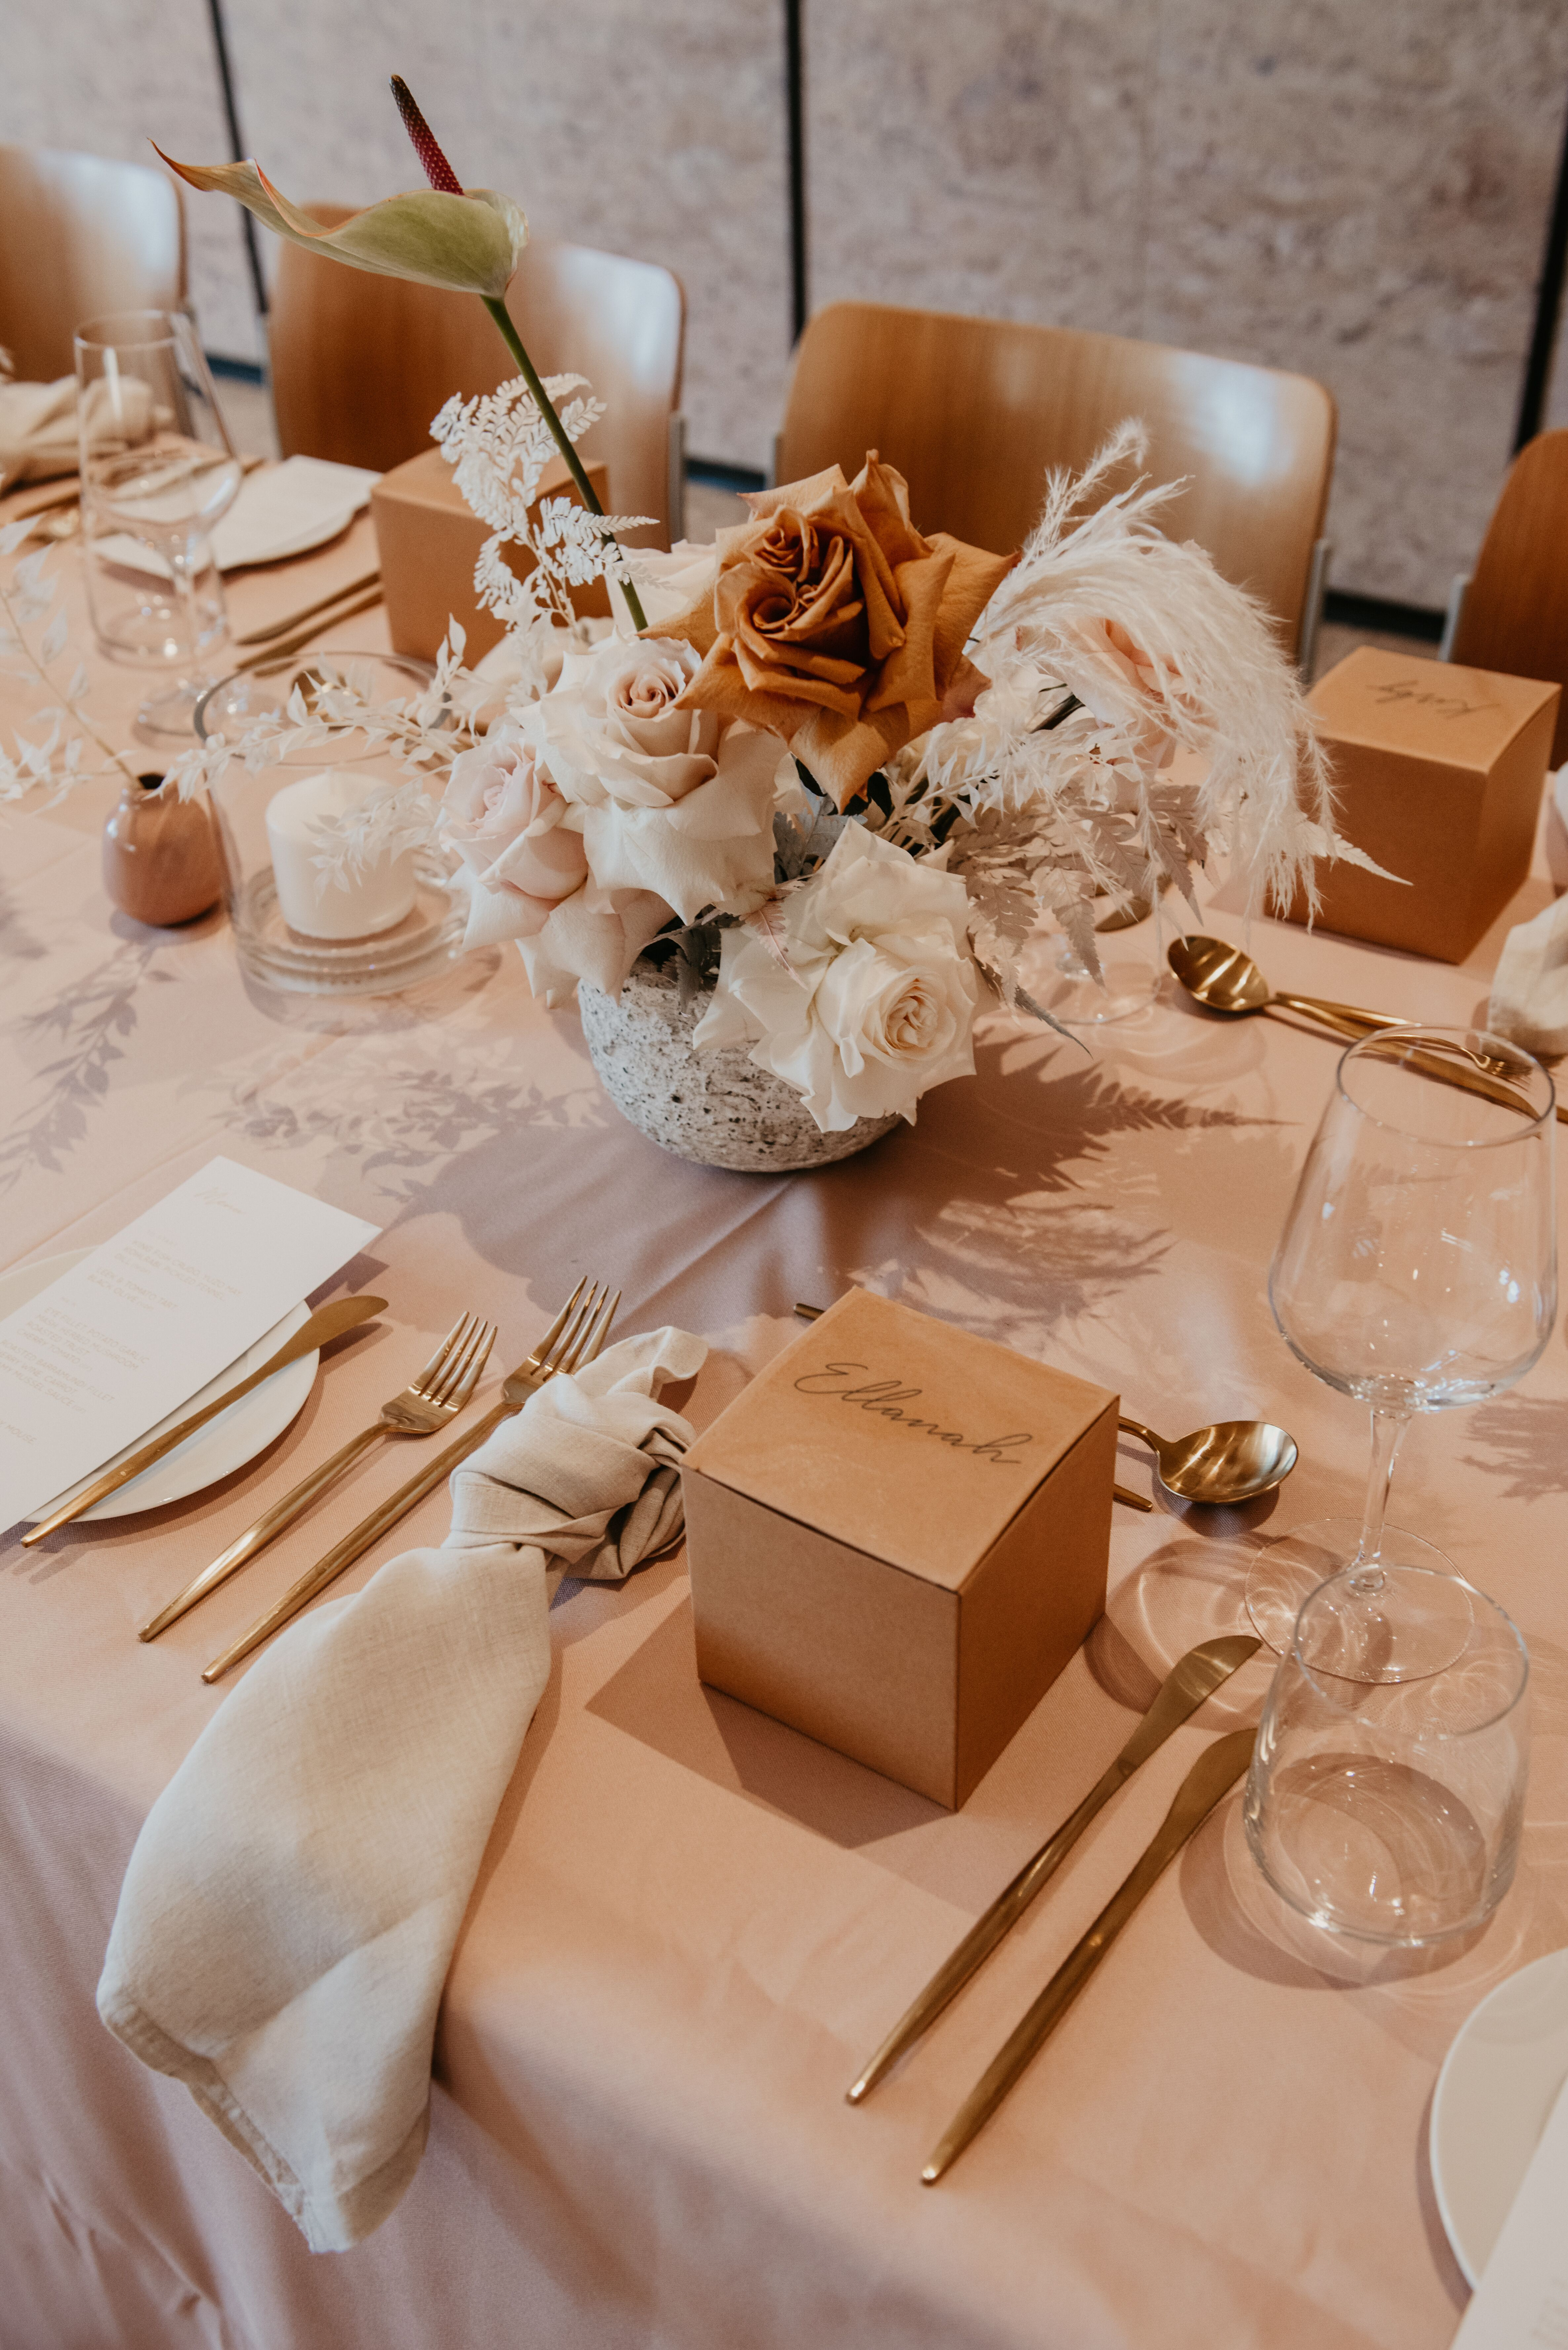 white+white the wedding school Yasmyn and Lincoln The Calile Hotel dusty pink cream florals linens reception venue tables close personalised styling dried florals gold cutlery